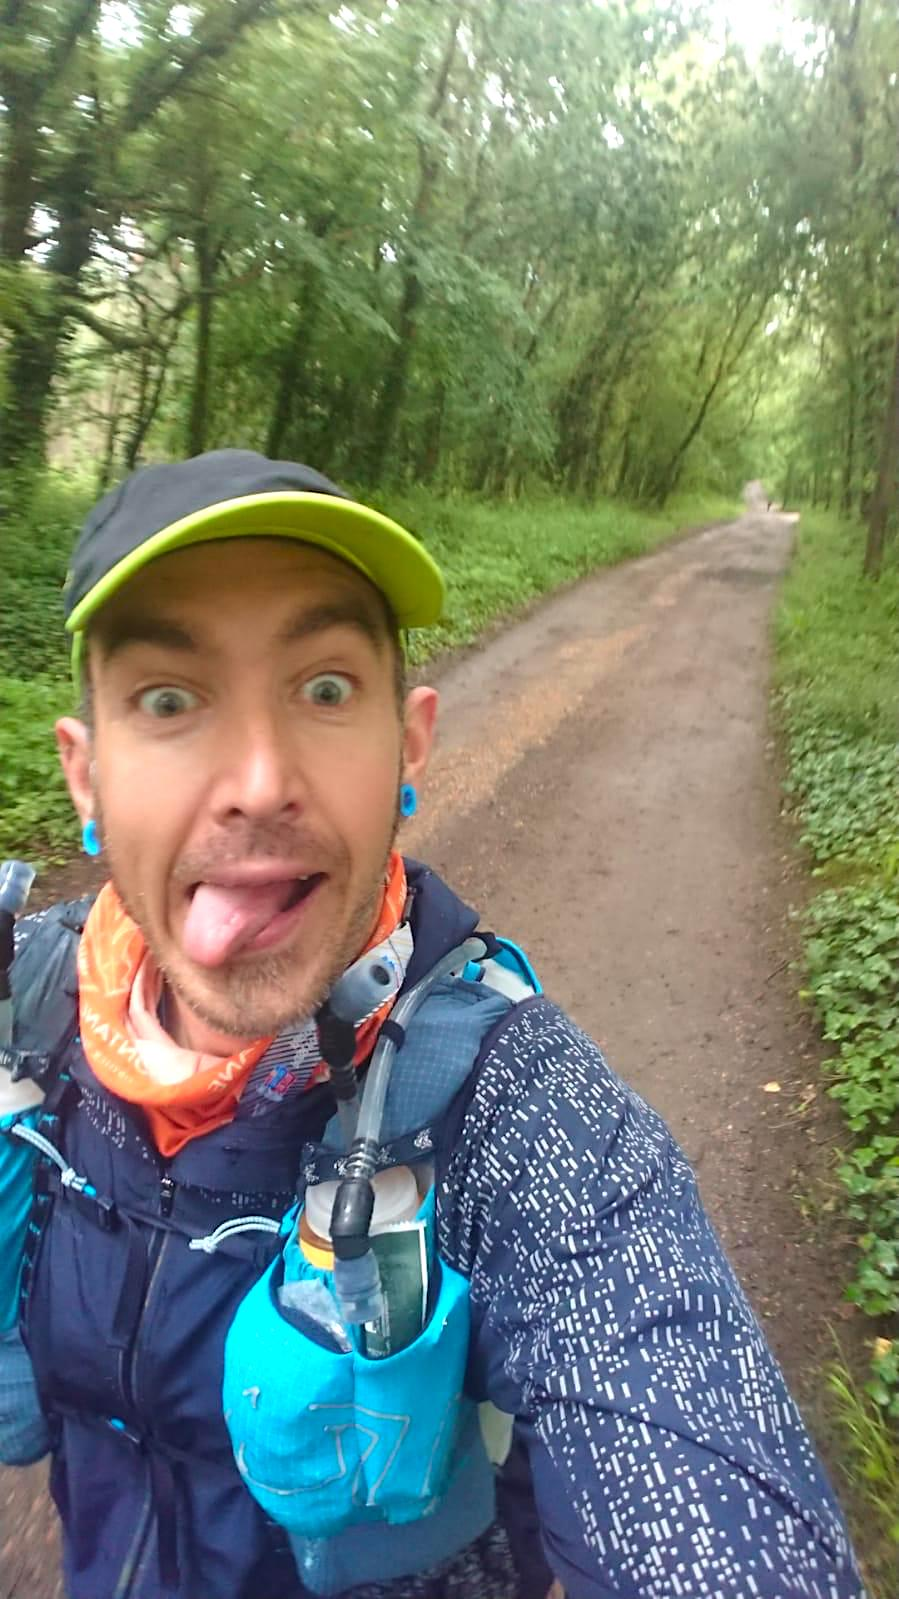 Trust volunteer sticks out in tongue for a selfie during the 2021 Isle of Wight Challenge ultra marathon